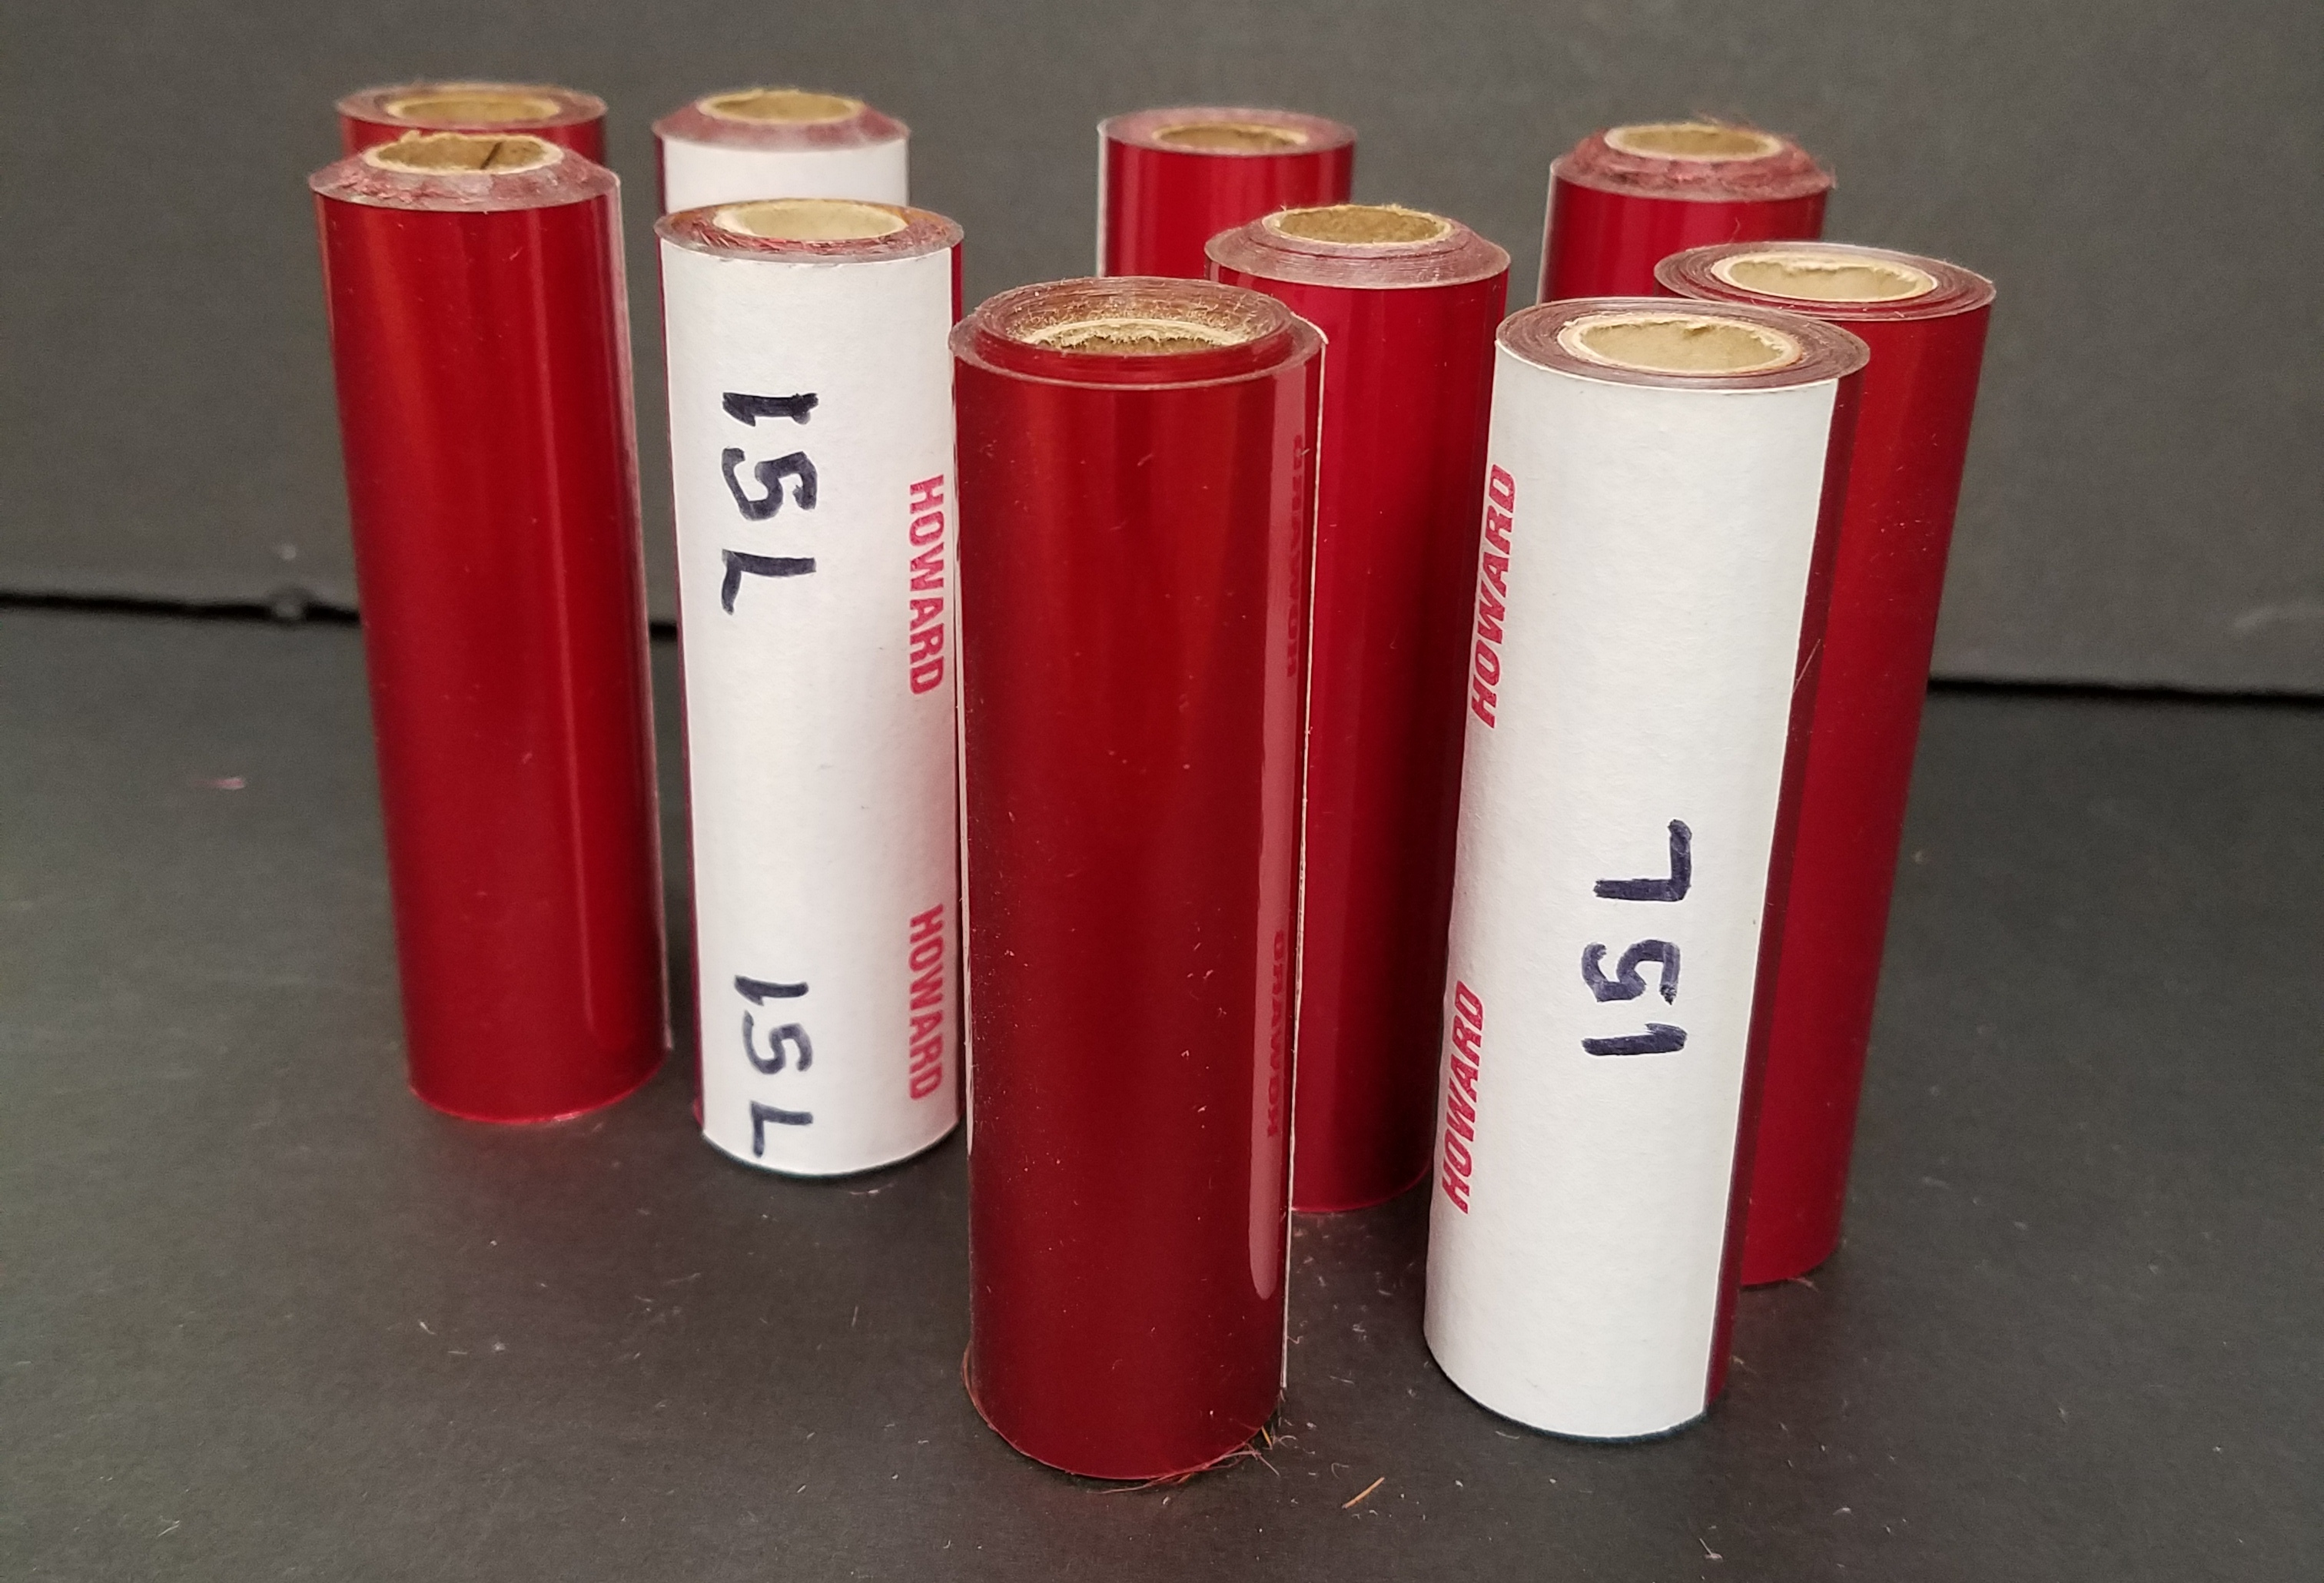 15-L Red Hot Stamping Foil (10 rolls) 3 1/2 inch wide